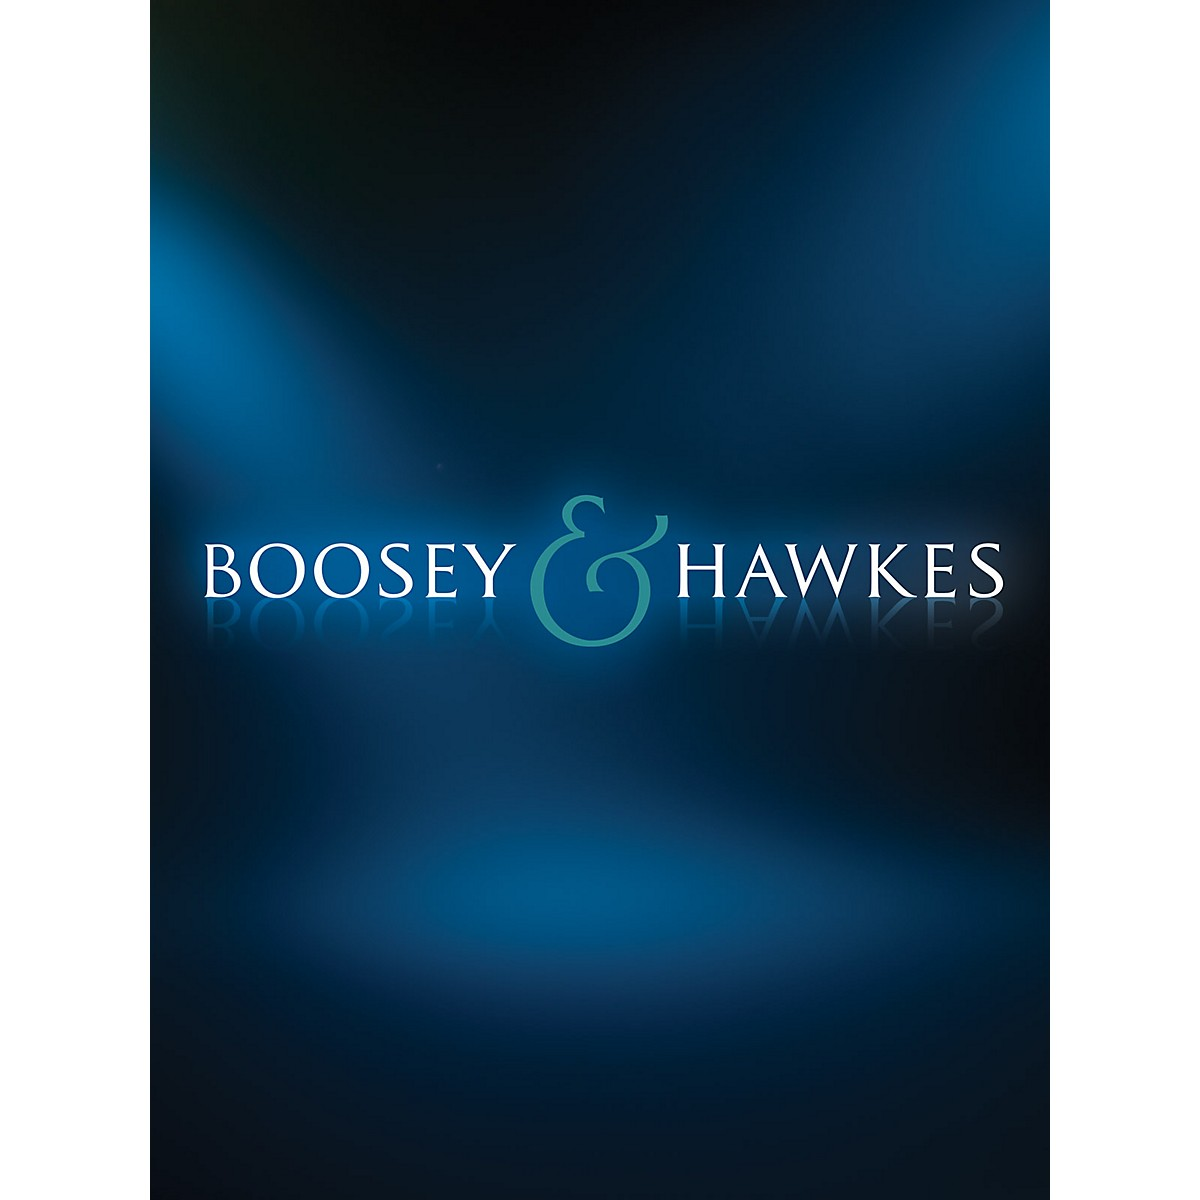 Bote & Bock Sieben Sonaten, Op. 91 (Book 2 (Nos. 5-7)) Boosey & Hawkes Chamber Music Series Composed by Max Reger